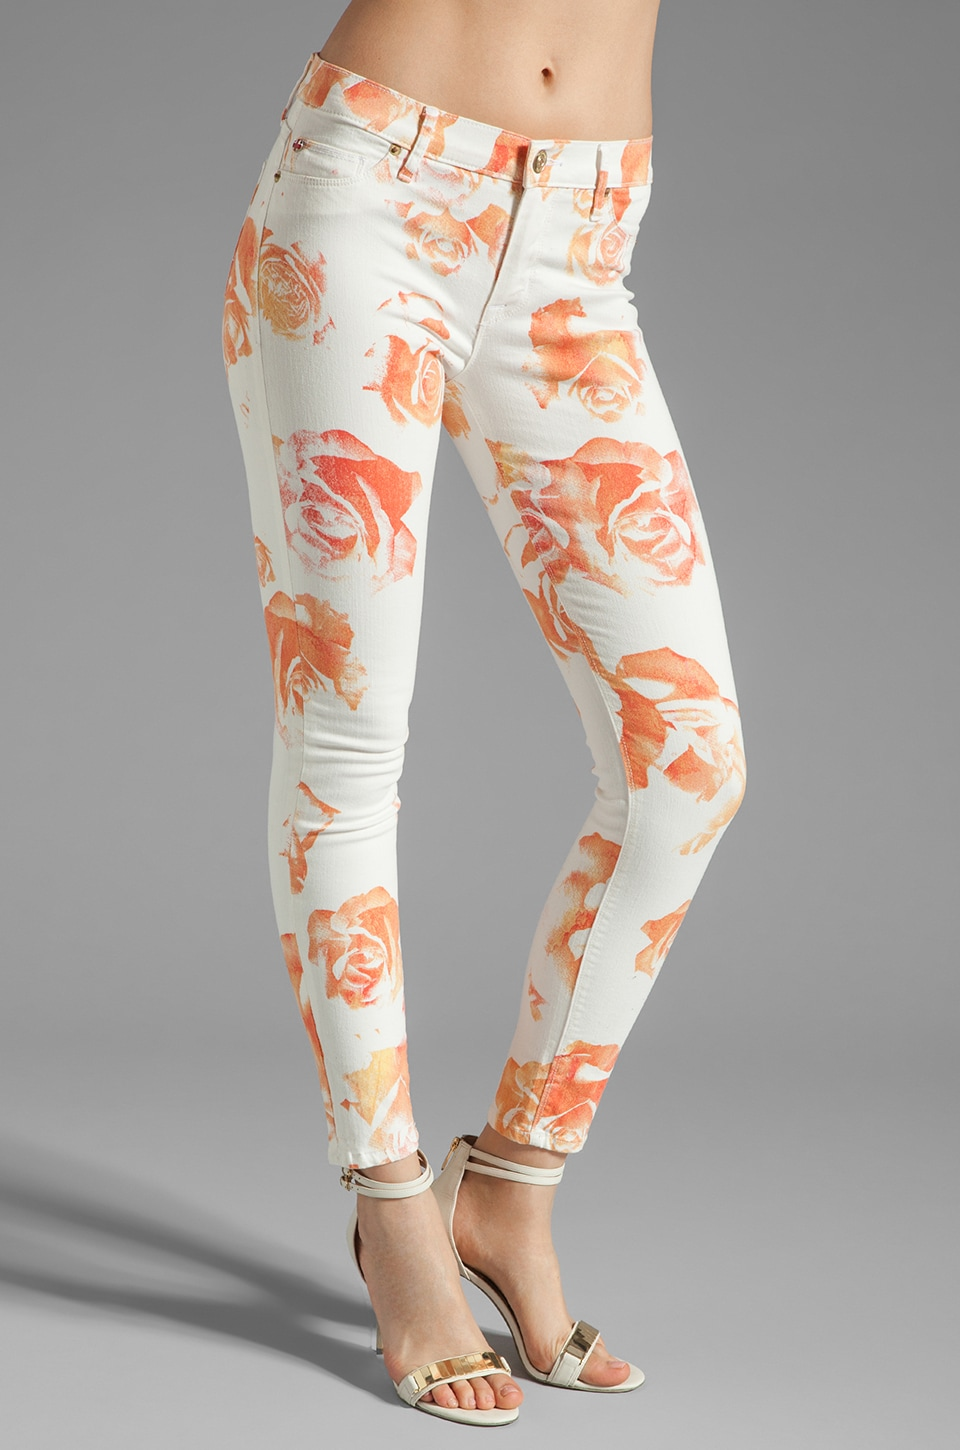 Hudson Jeans Nico Skinny in Photo Bloom